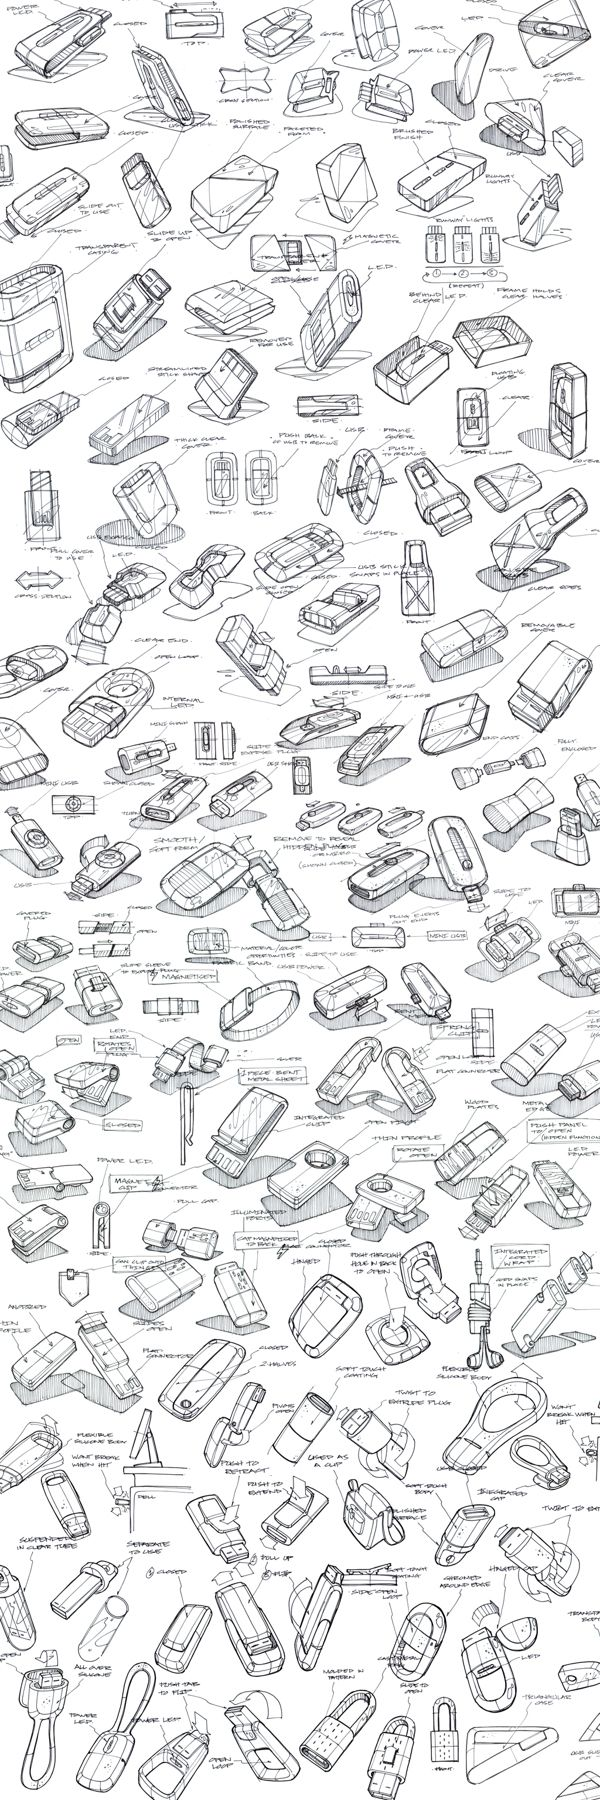 Product Sketching & Ideation by Mason Umholtz, via Behance 充满回忆